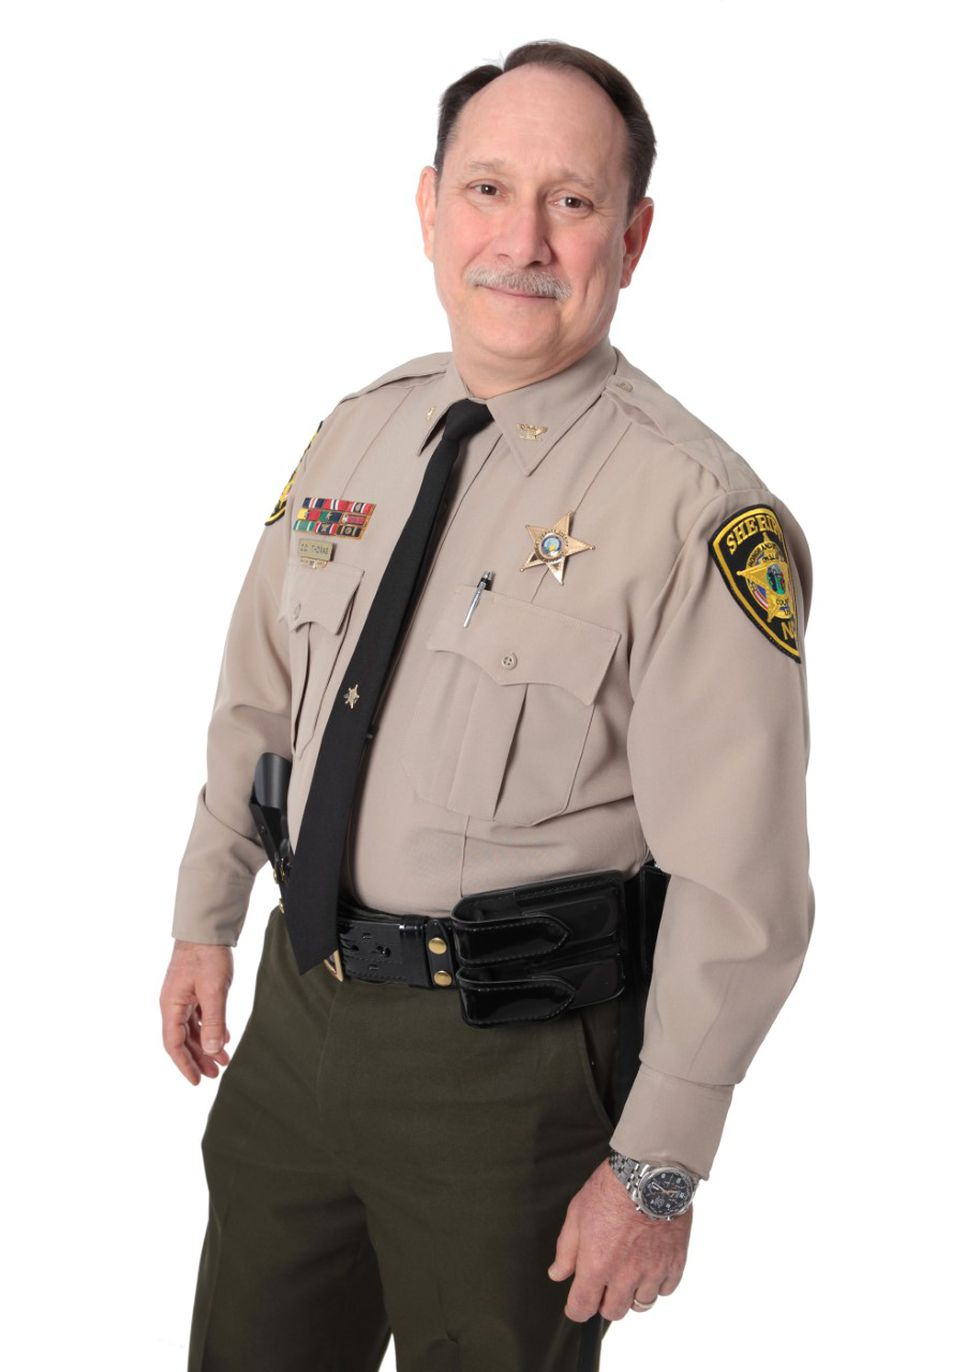 Colonel Chris Thomas, announces candidacy for Onslow County Sheriff.